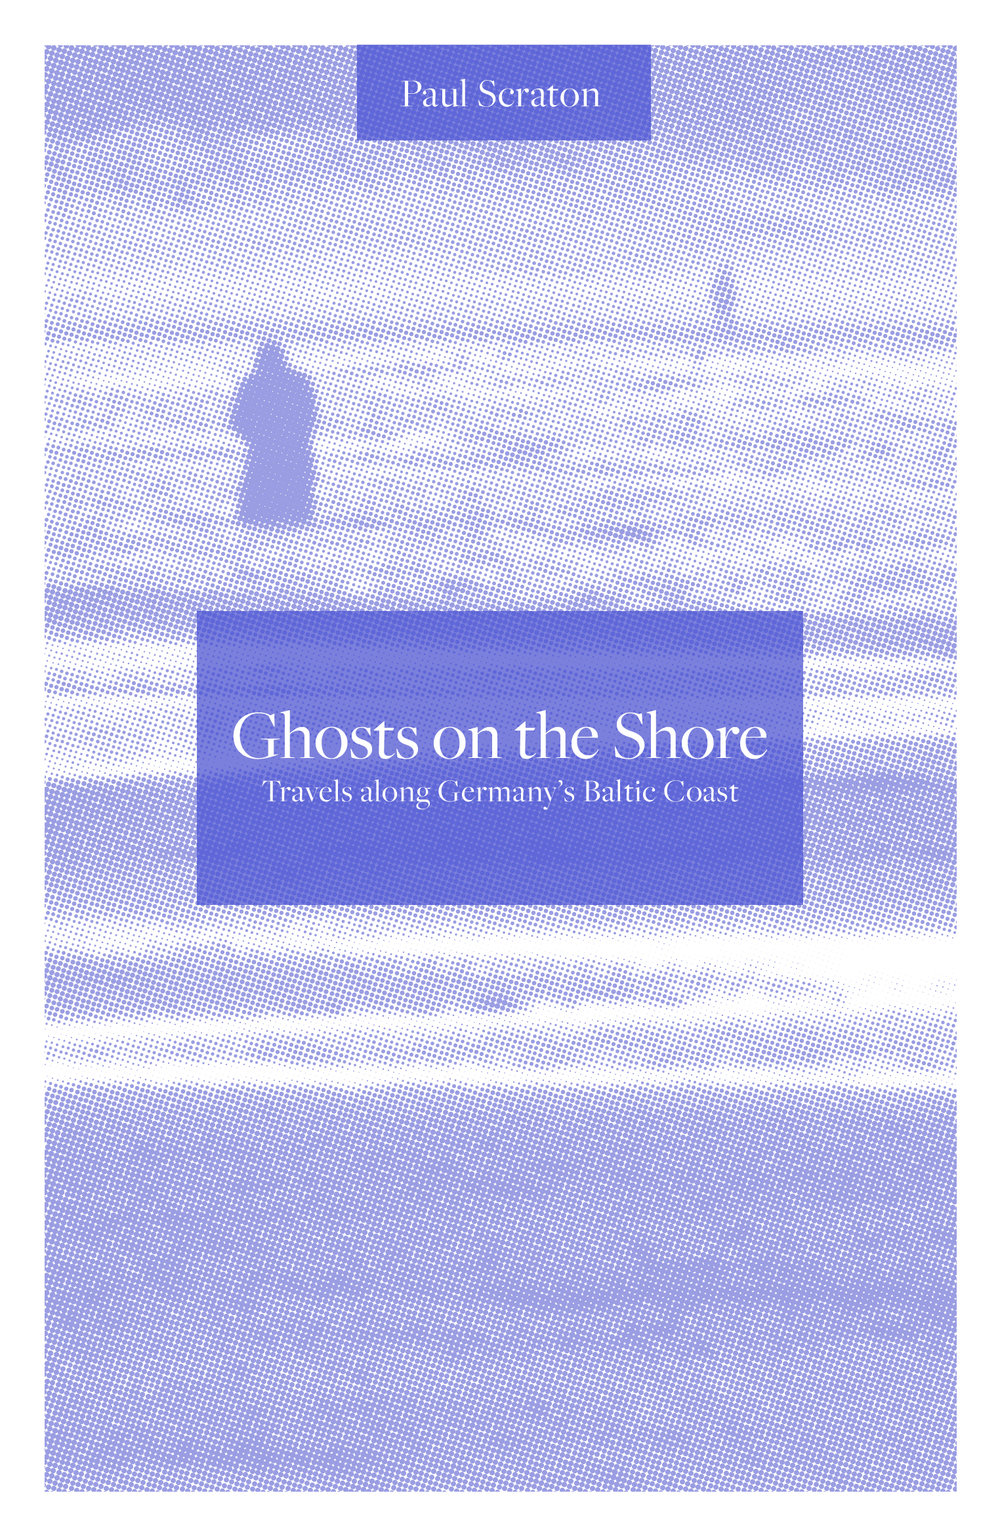 Ghosts on the Shore: Travels Along Germany's Baltic Coast by Paul Scraton